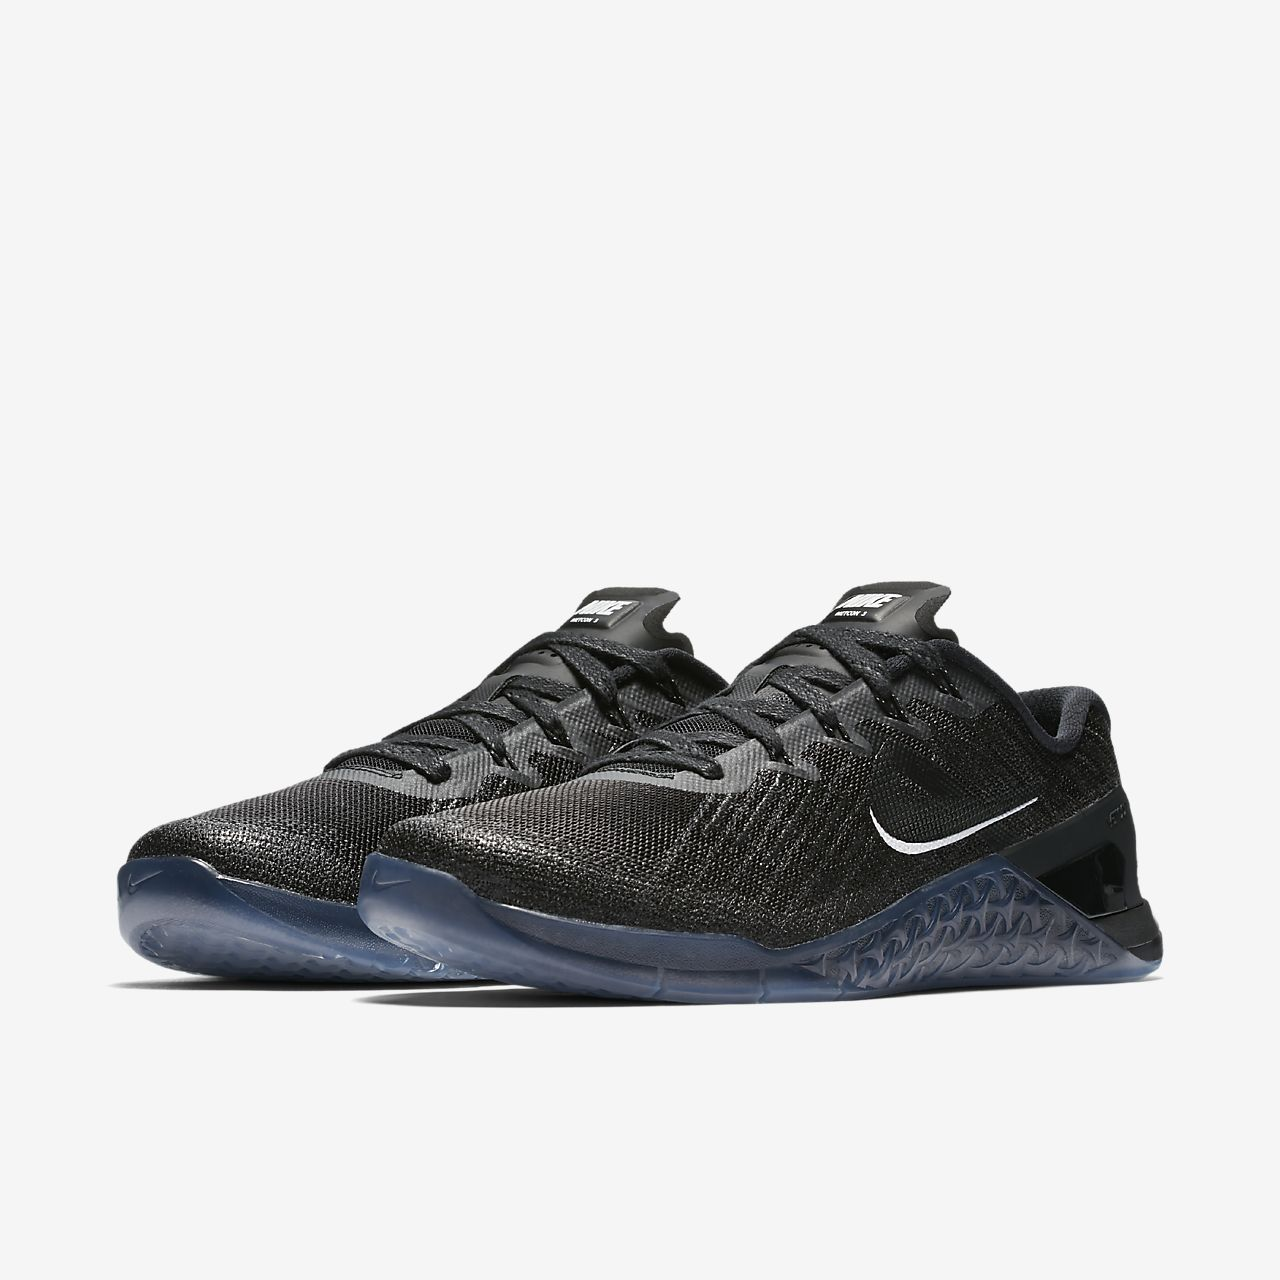 afc0c188a61a6 Nike Metcon 3 Eclipse Men s Training Shoe